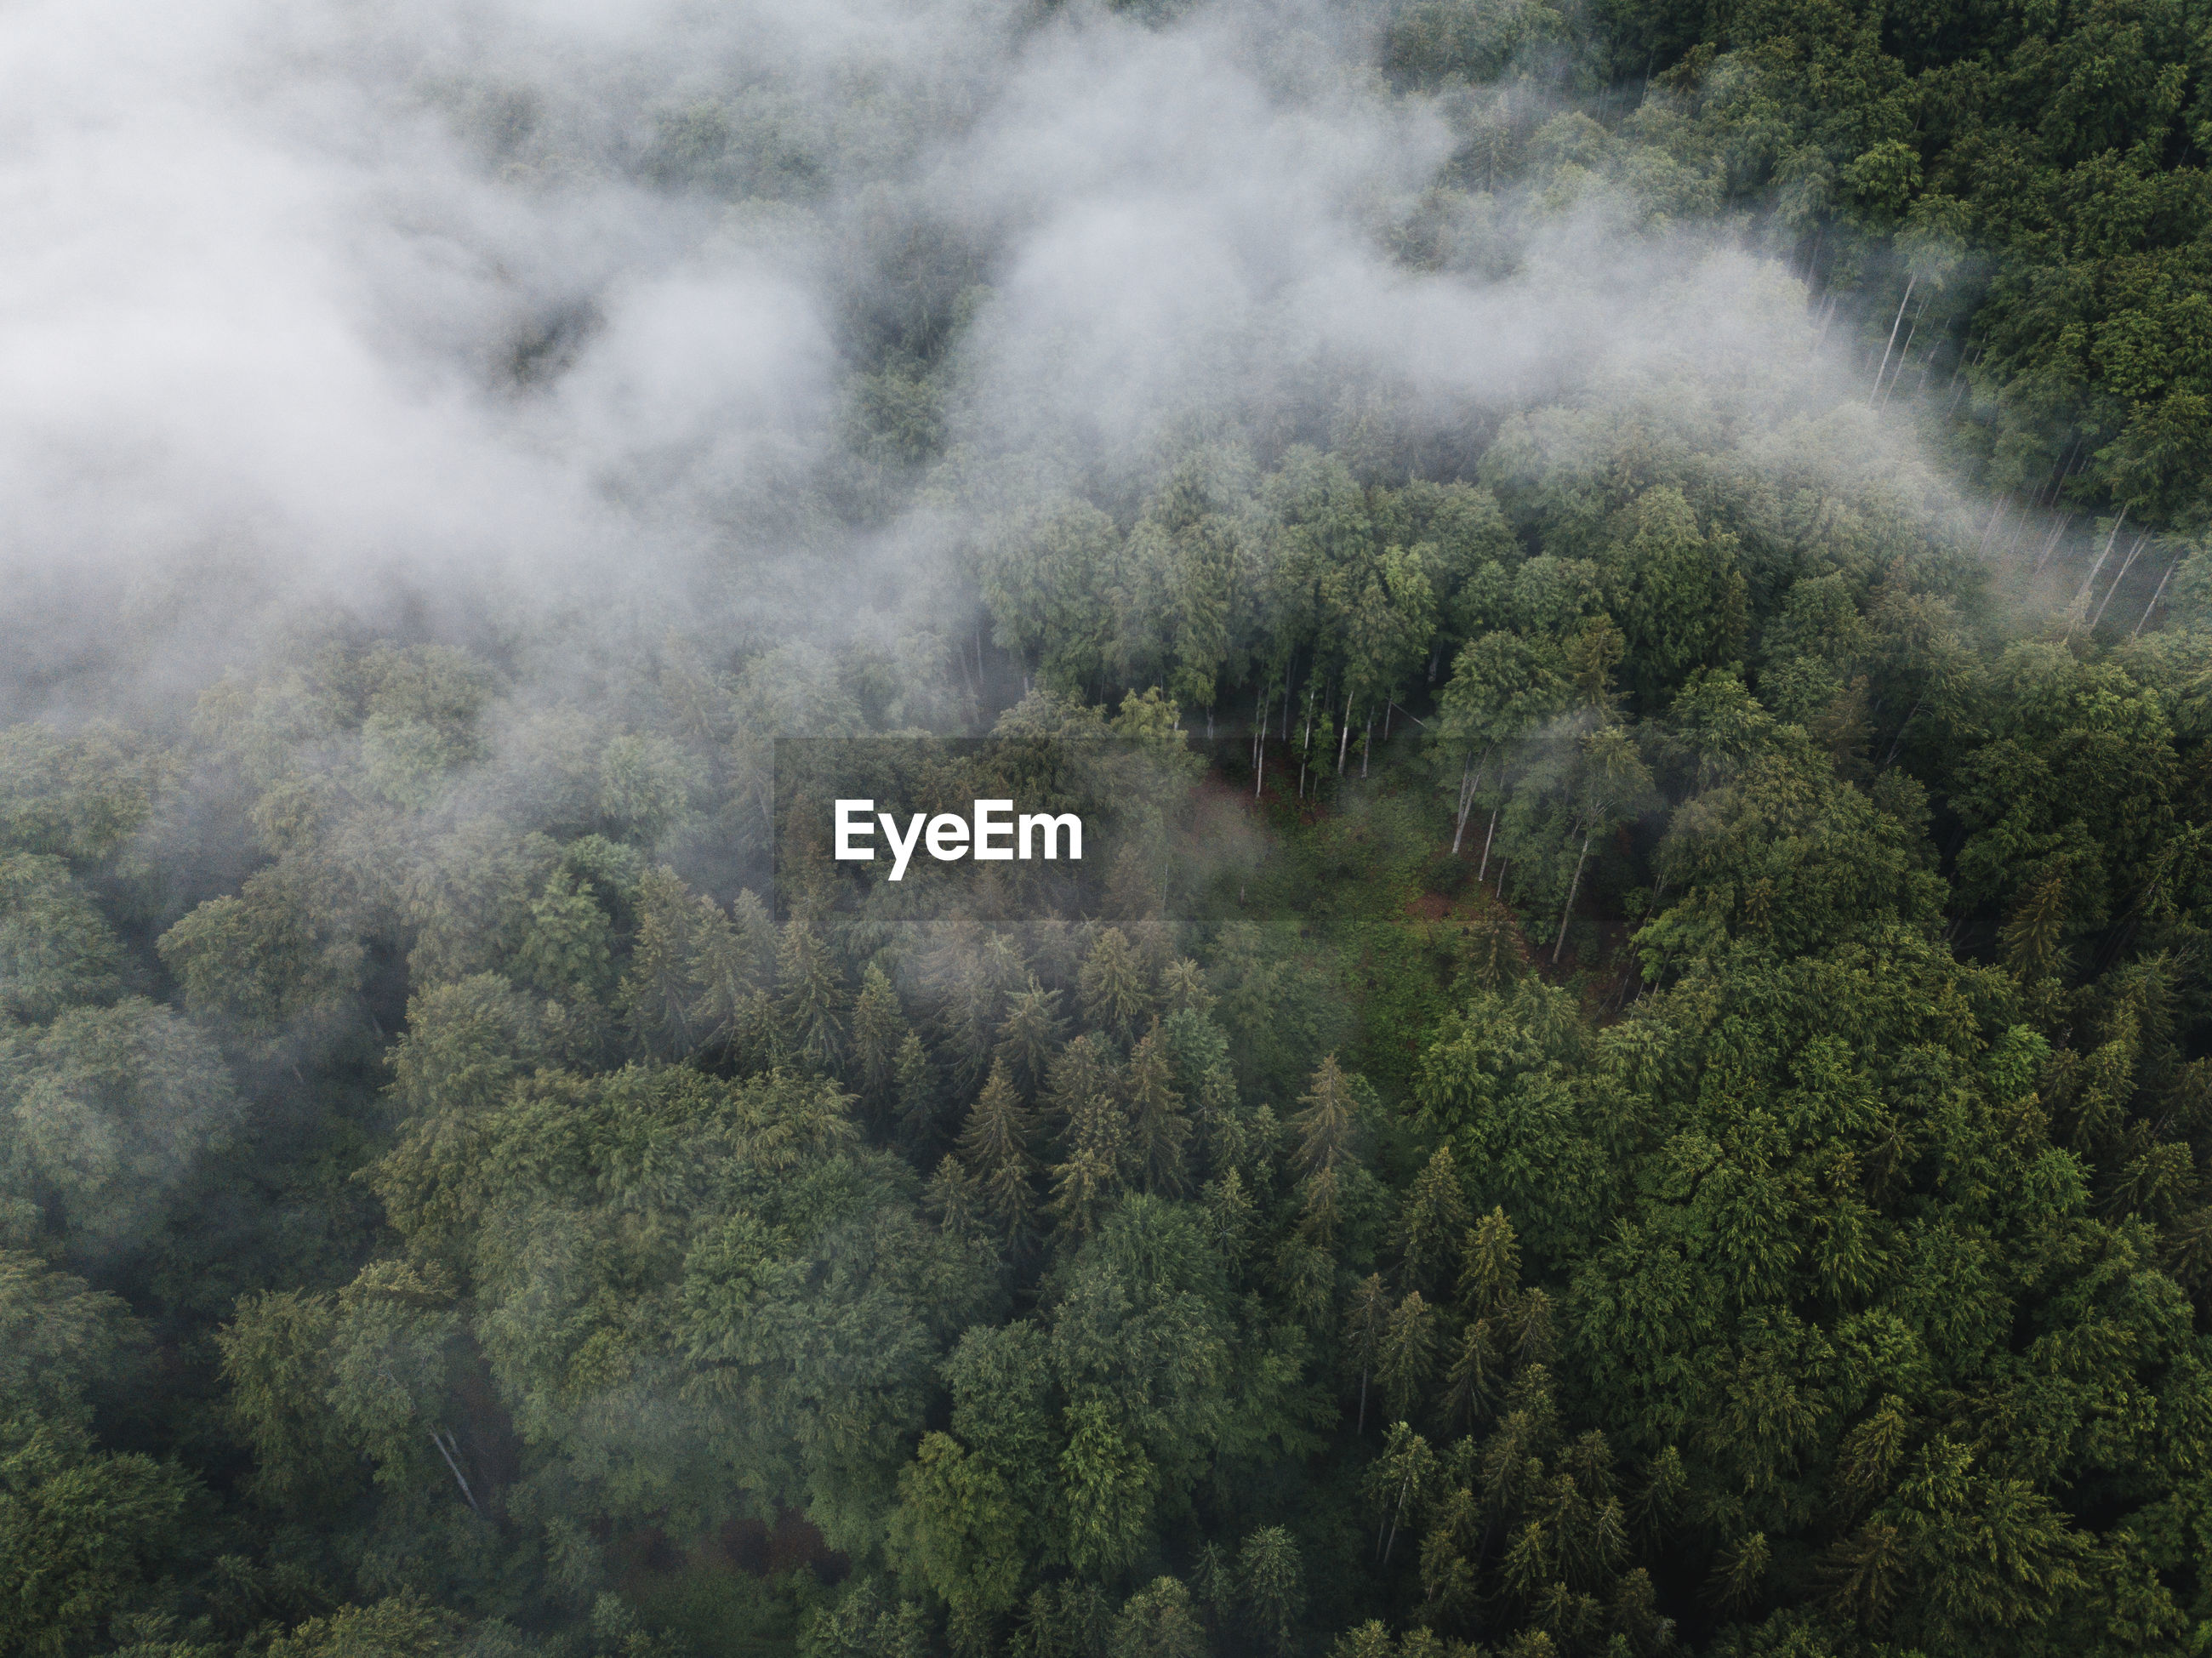 HIGH ANGLE VIEW OF PLANTS AND TREES IN FOREST